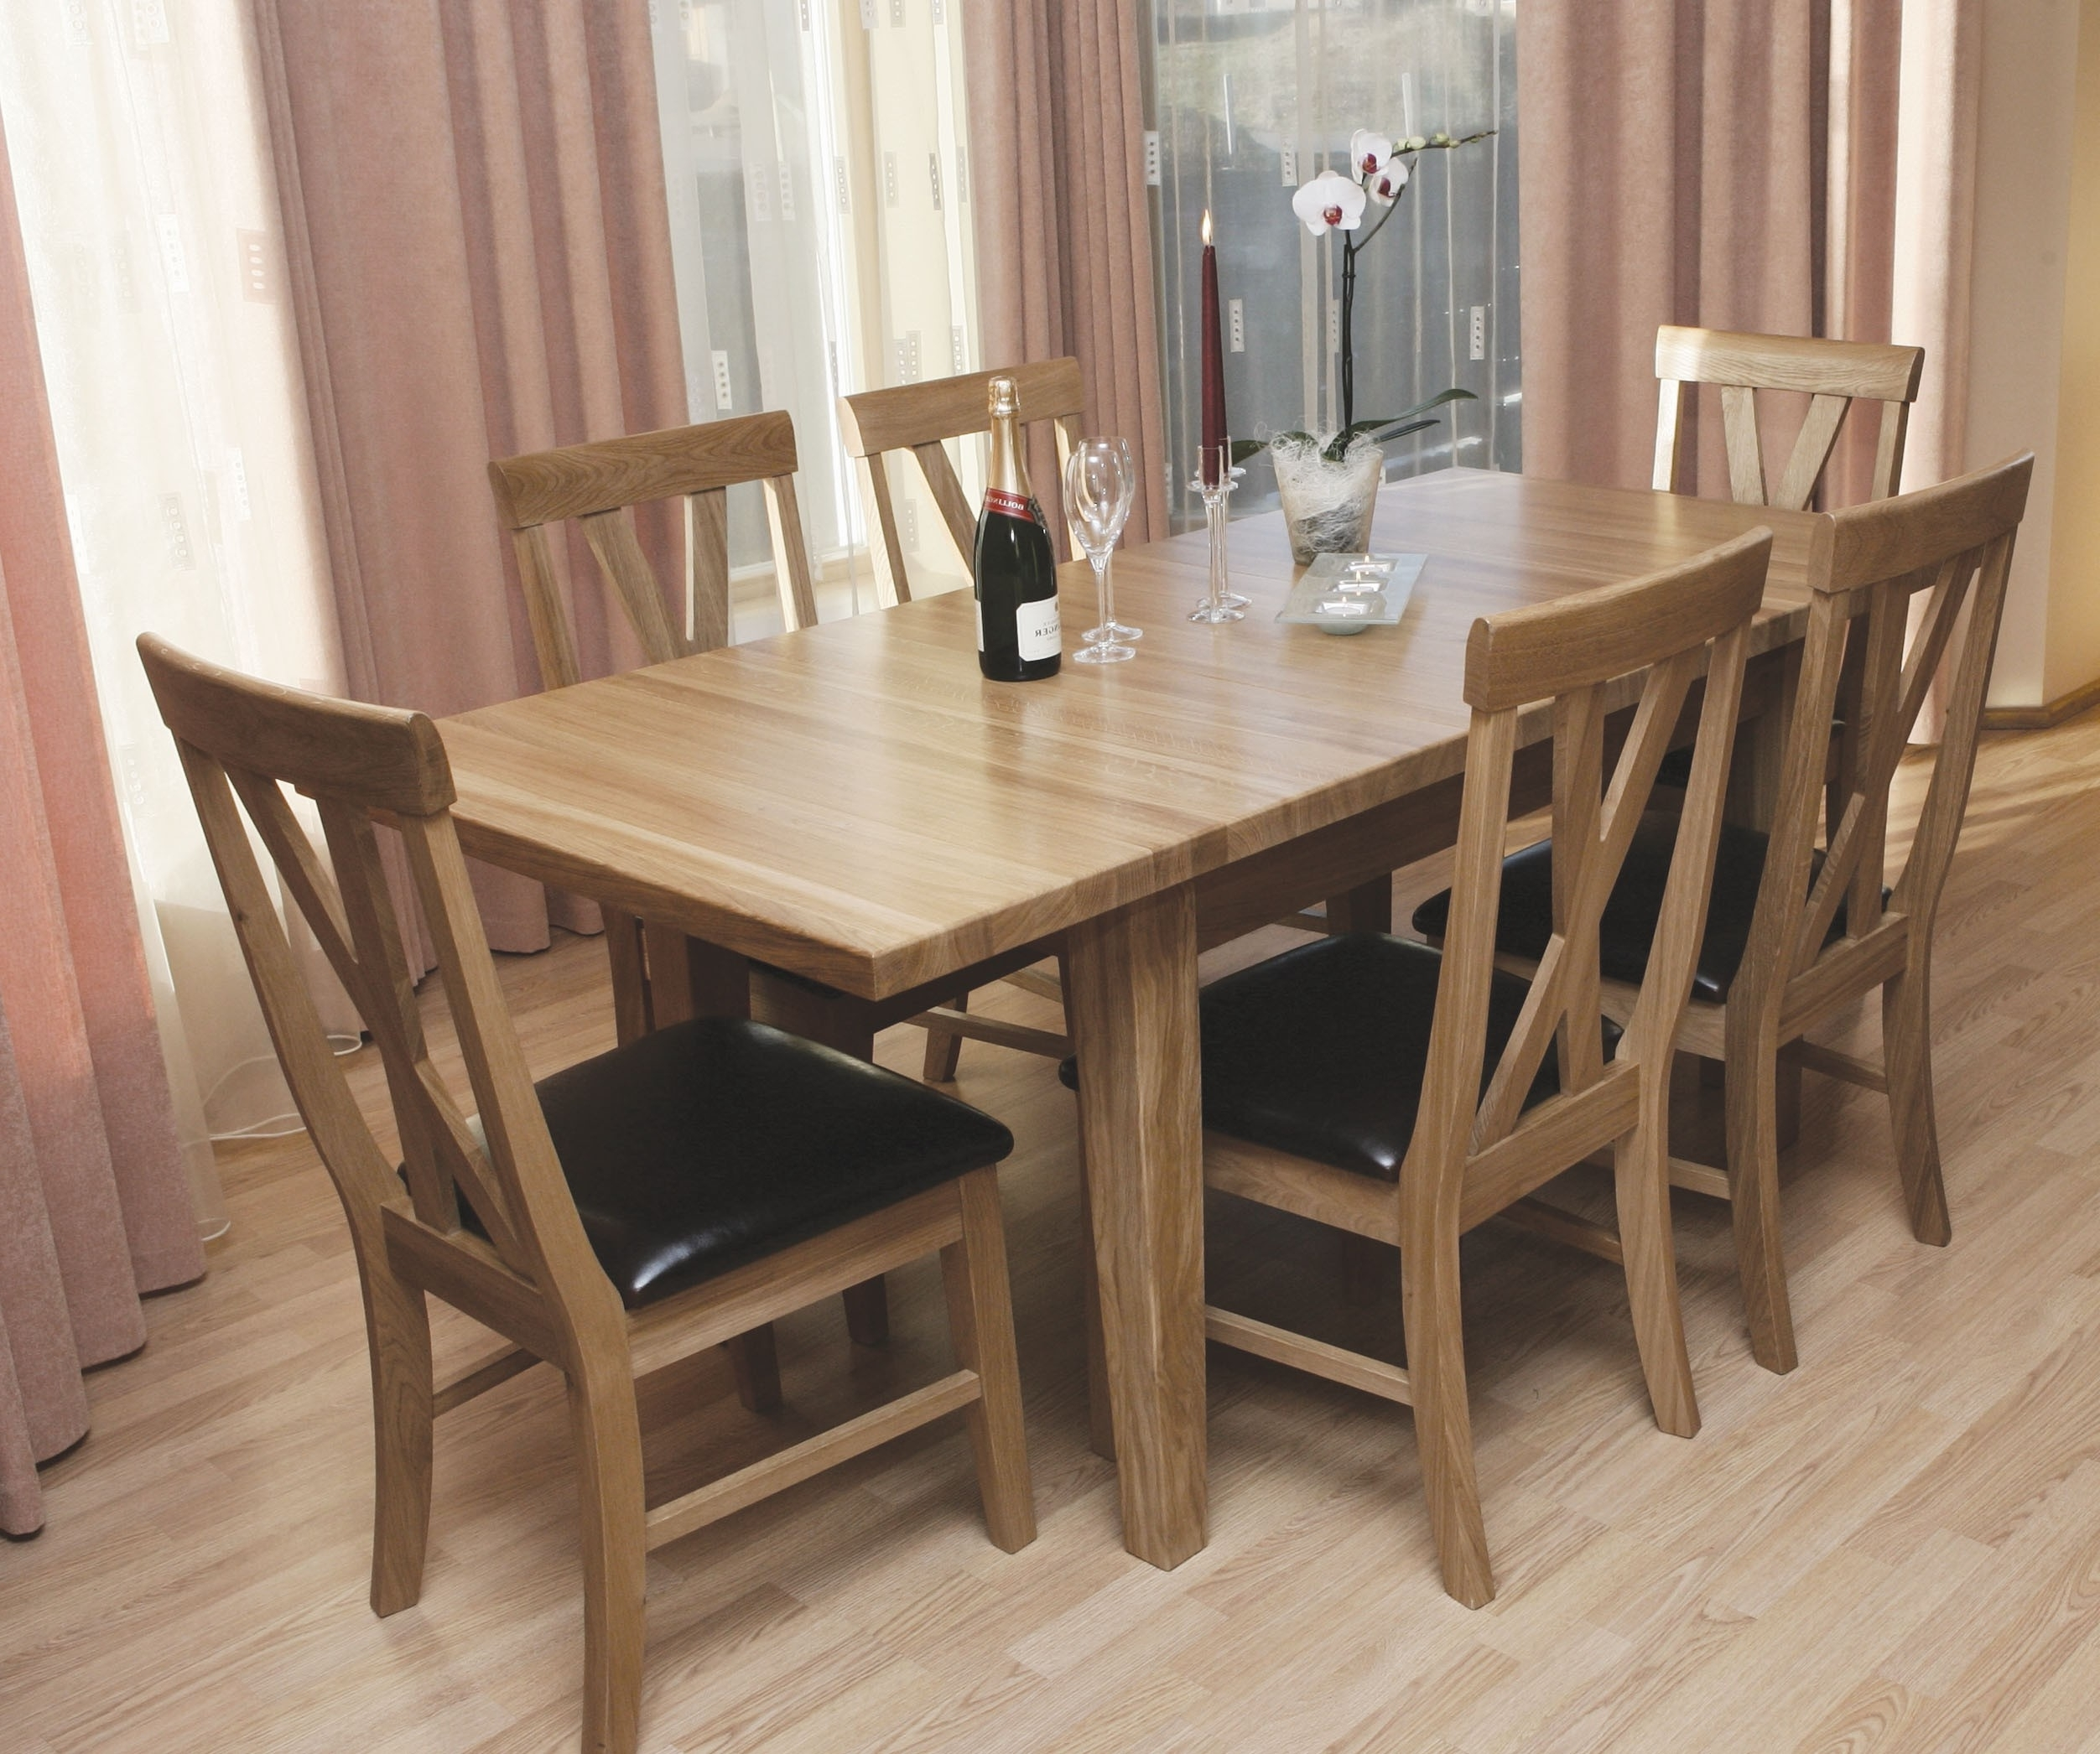 Newest Oak Furniture Dining Sets Throughout Tch Warwick 6 Seat Dining Table & Chairs Set Solid Oak – Furniture (Gallery 4 of 25)